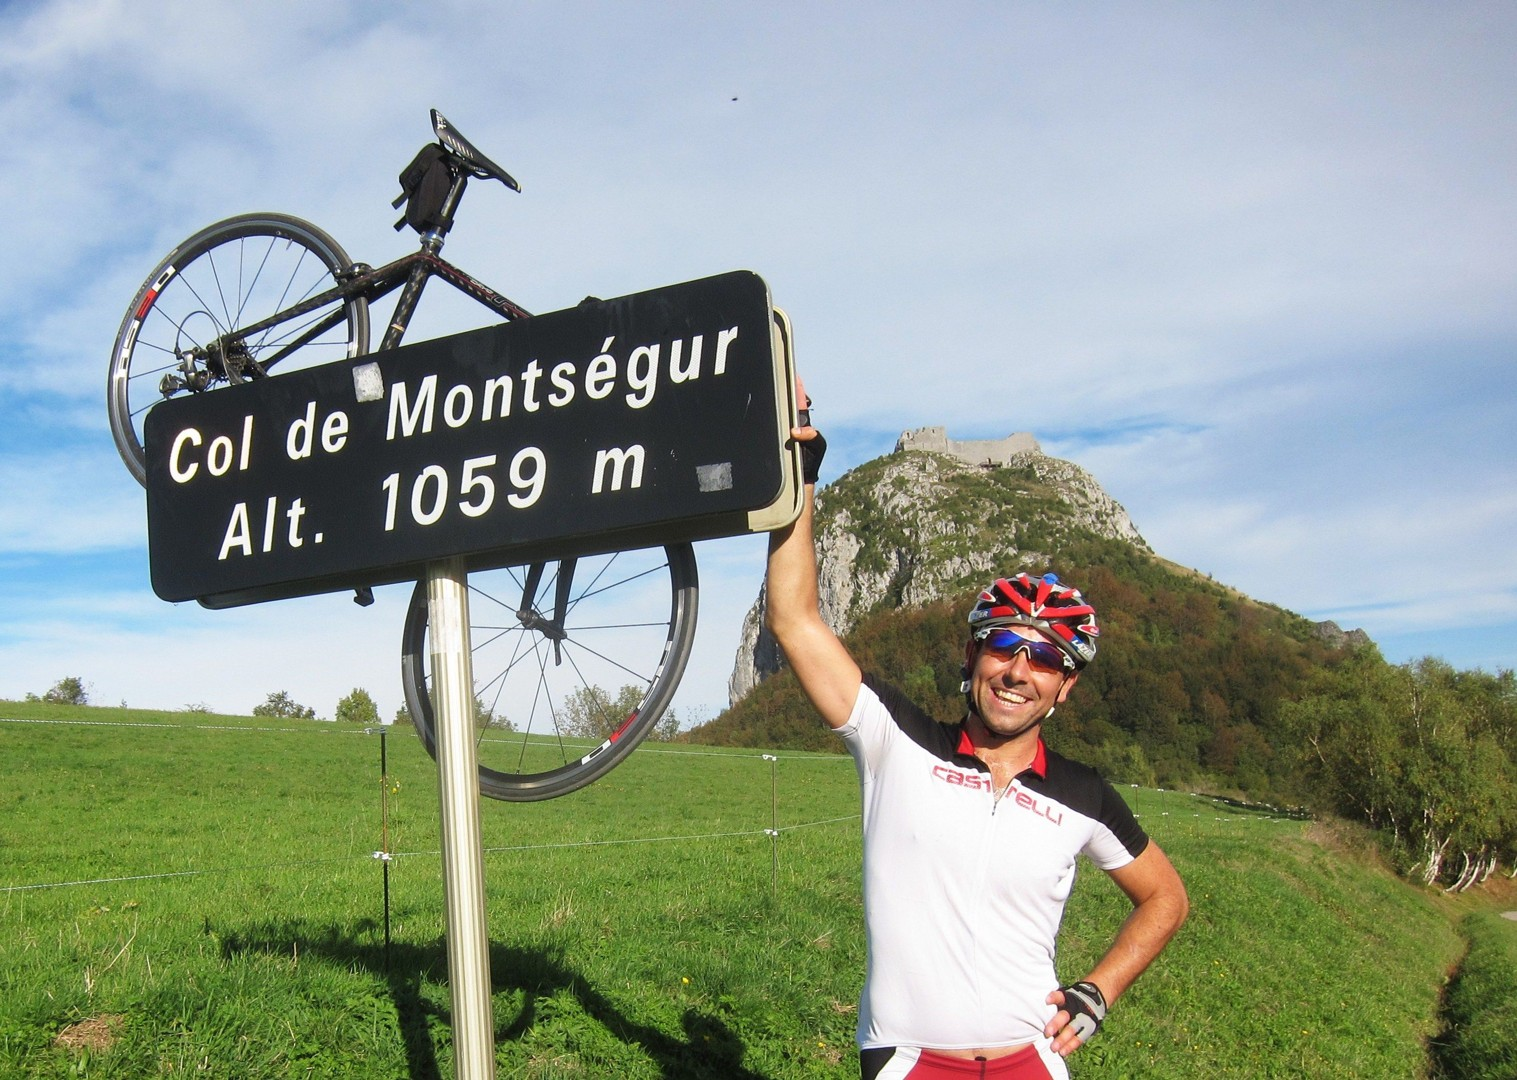 guided-road-cycling-france.jpg - France - Pyrenees Fitness Week (Grade 2-3) - Guided Road Cycling Holiday - Road Cycling